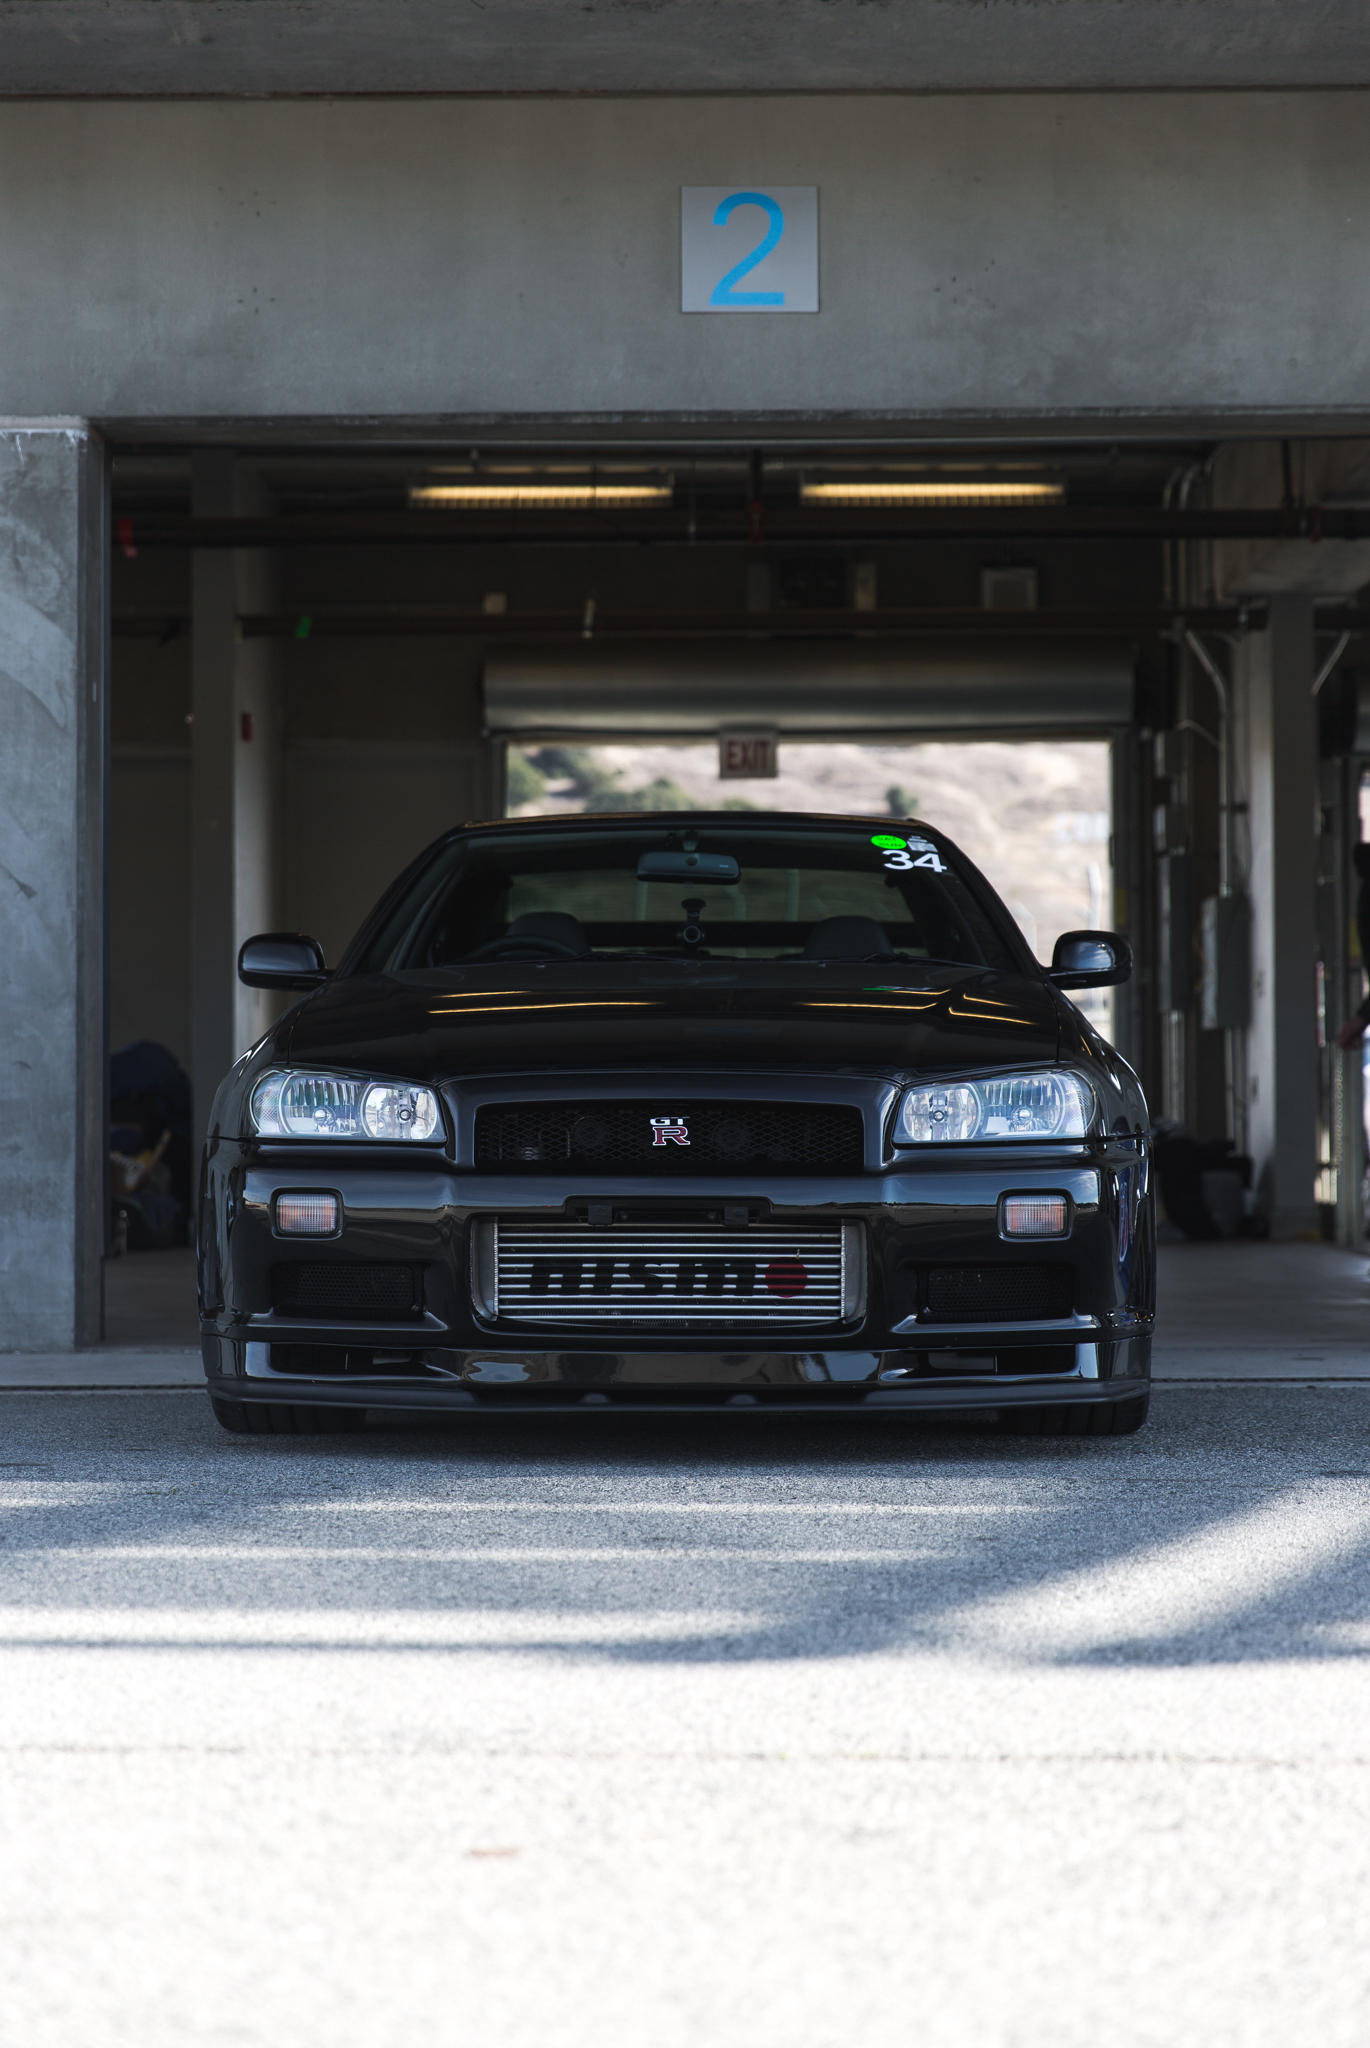 Stay_Driven_Rs_Day-55.jpg